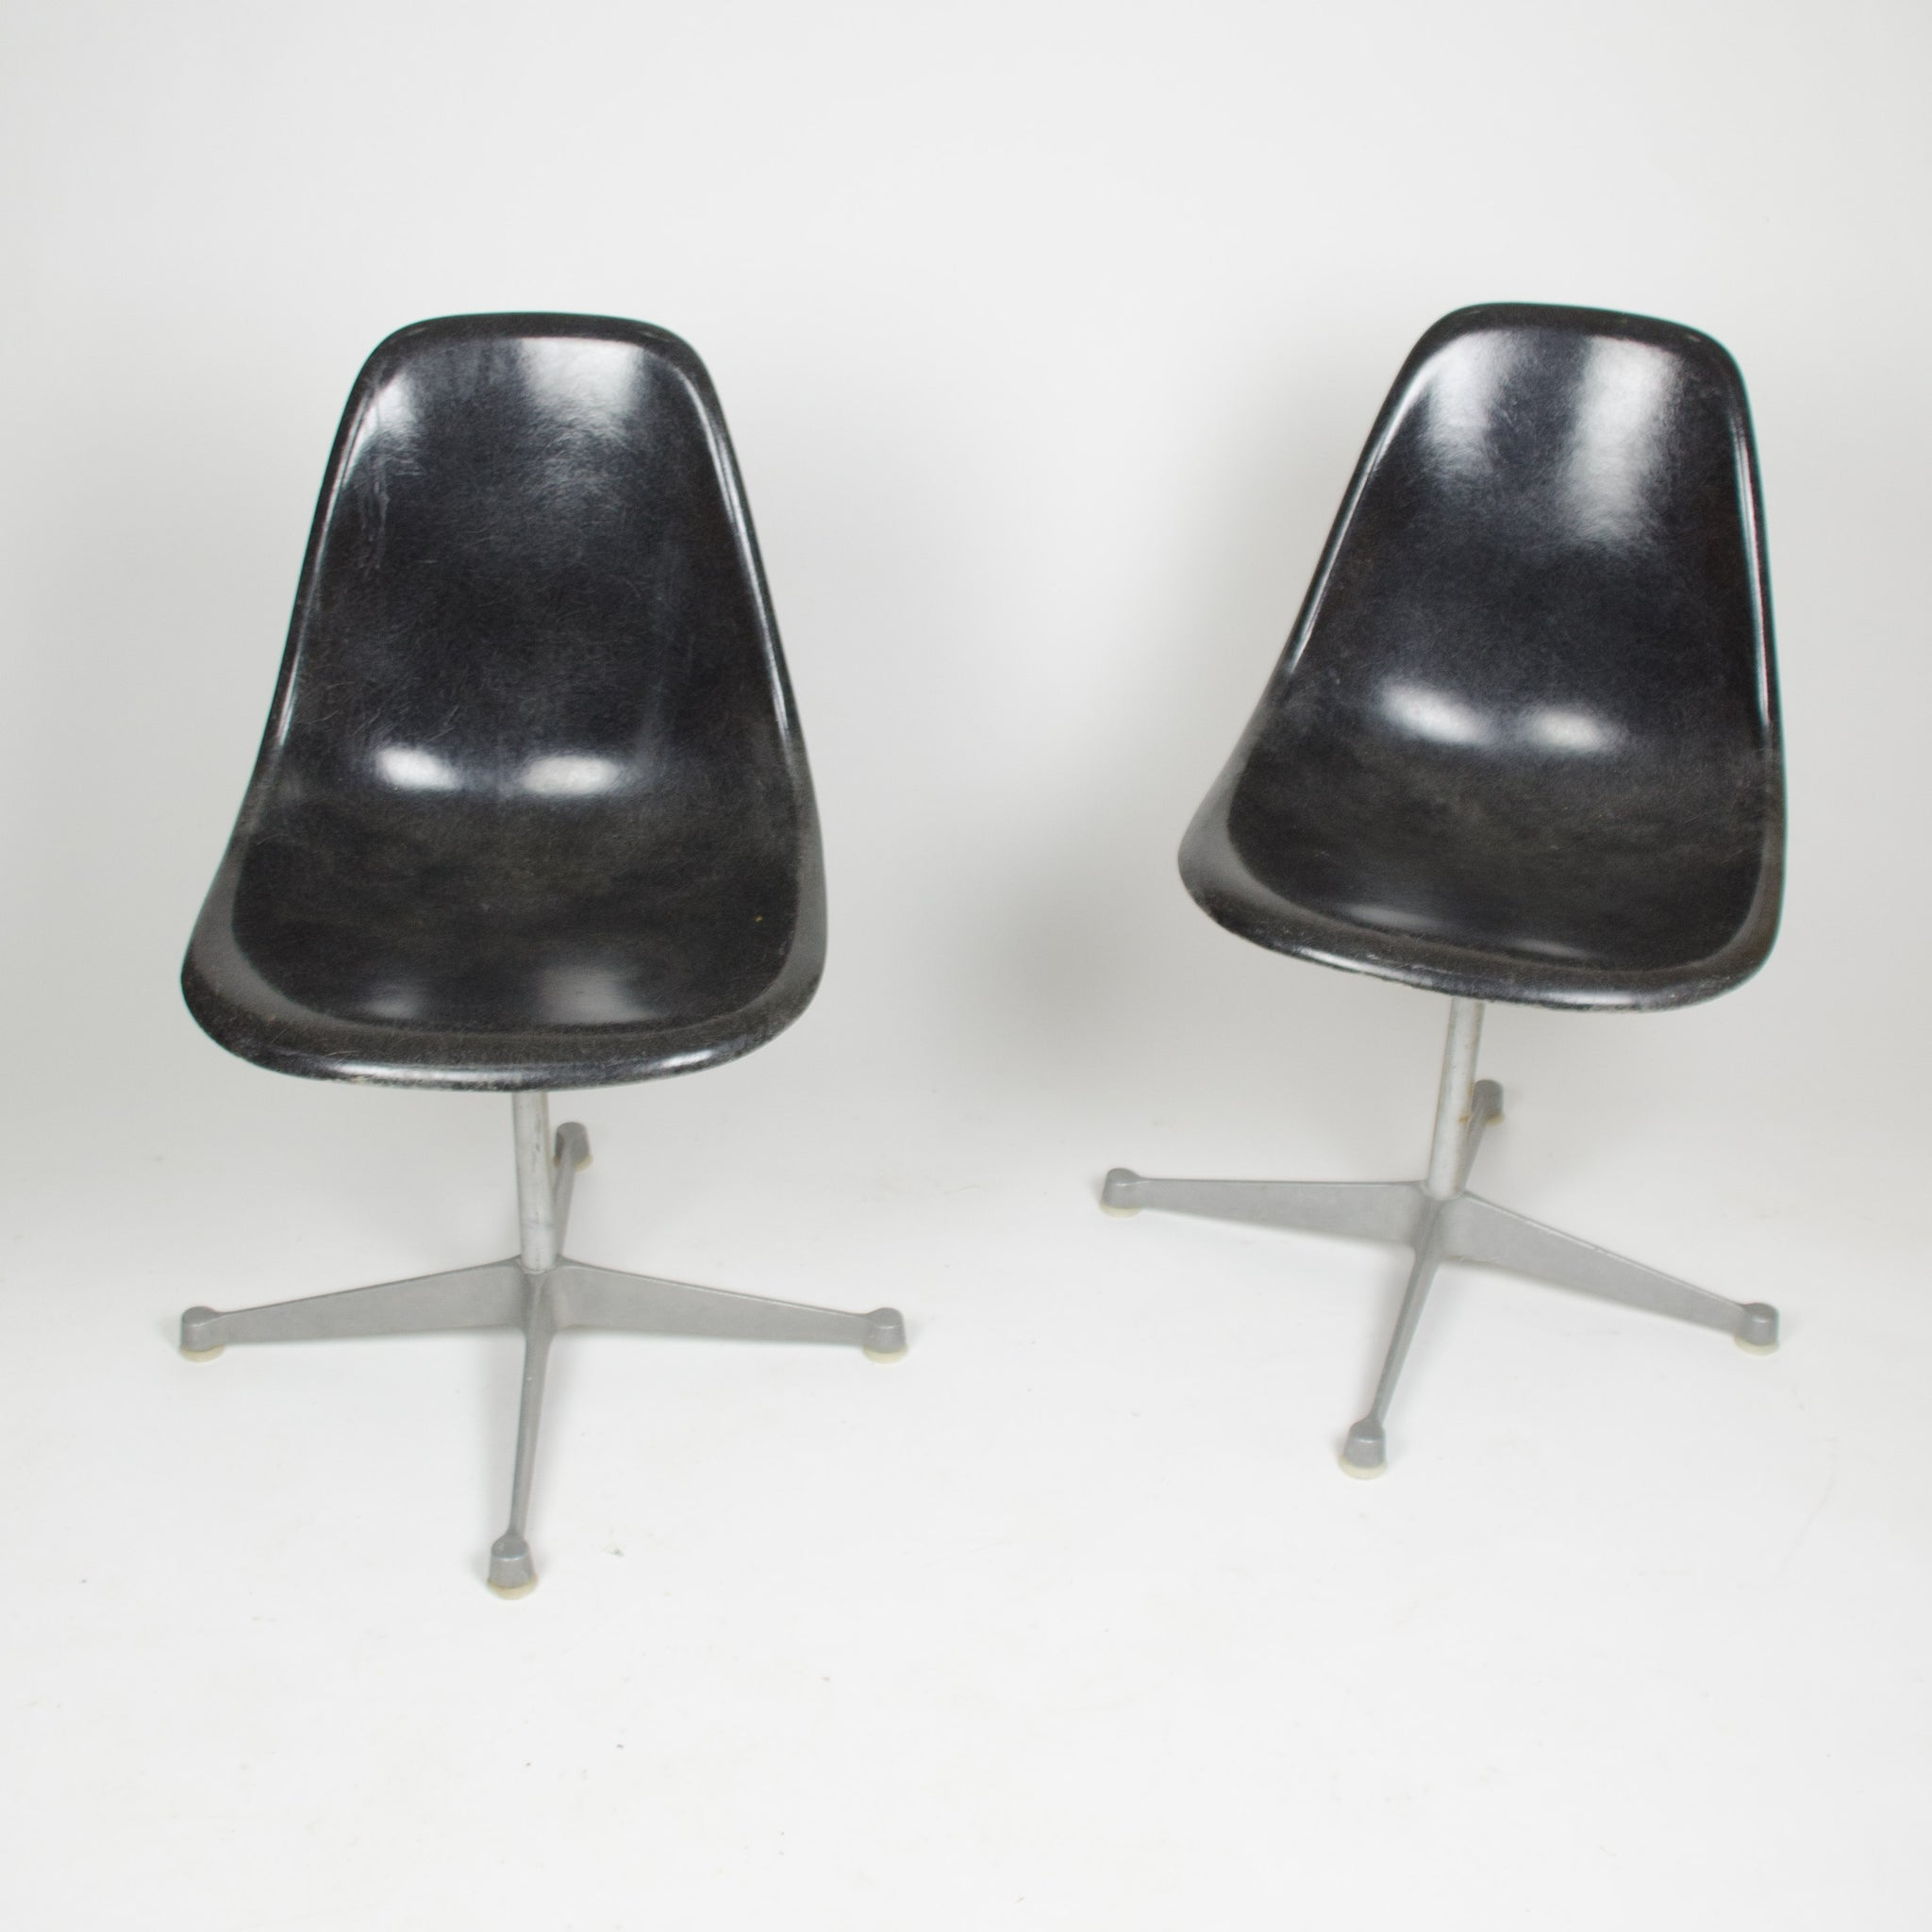 SOLD Eames Herman Black Fiberglass Side Shell Chairs (Sold Separately)